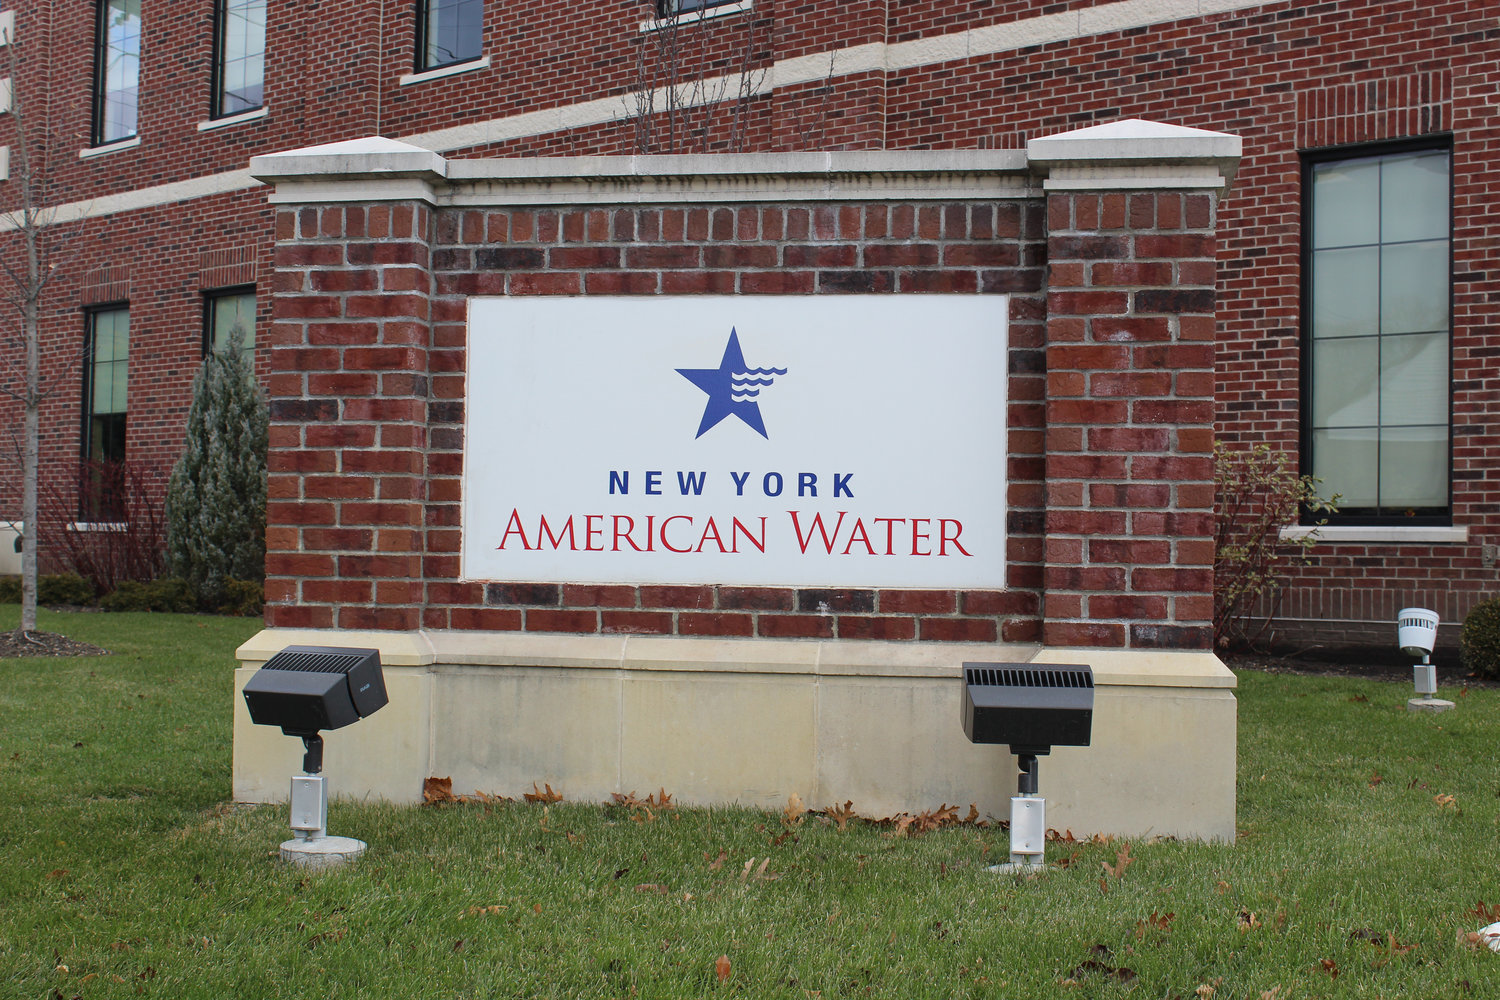 New York American Water is set to replace each meter in the county with smart meters.